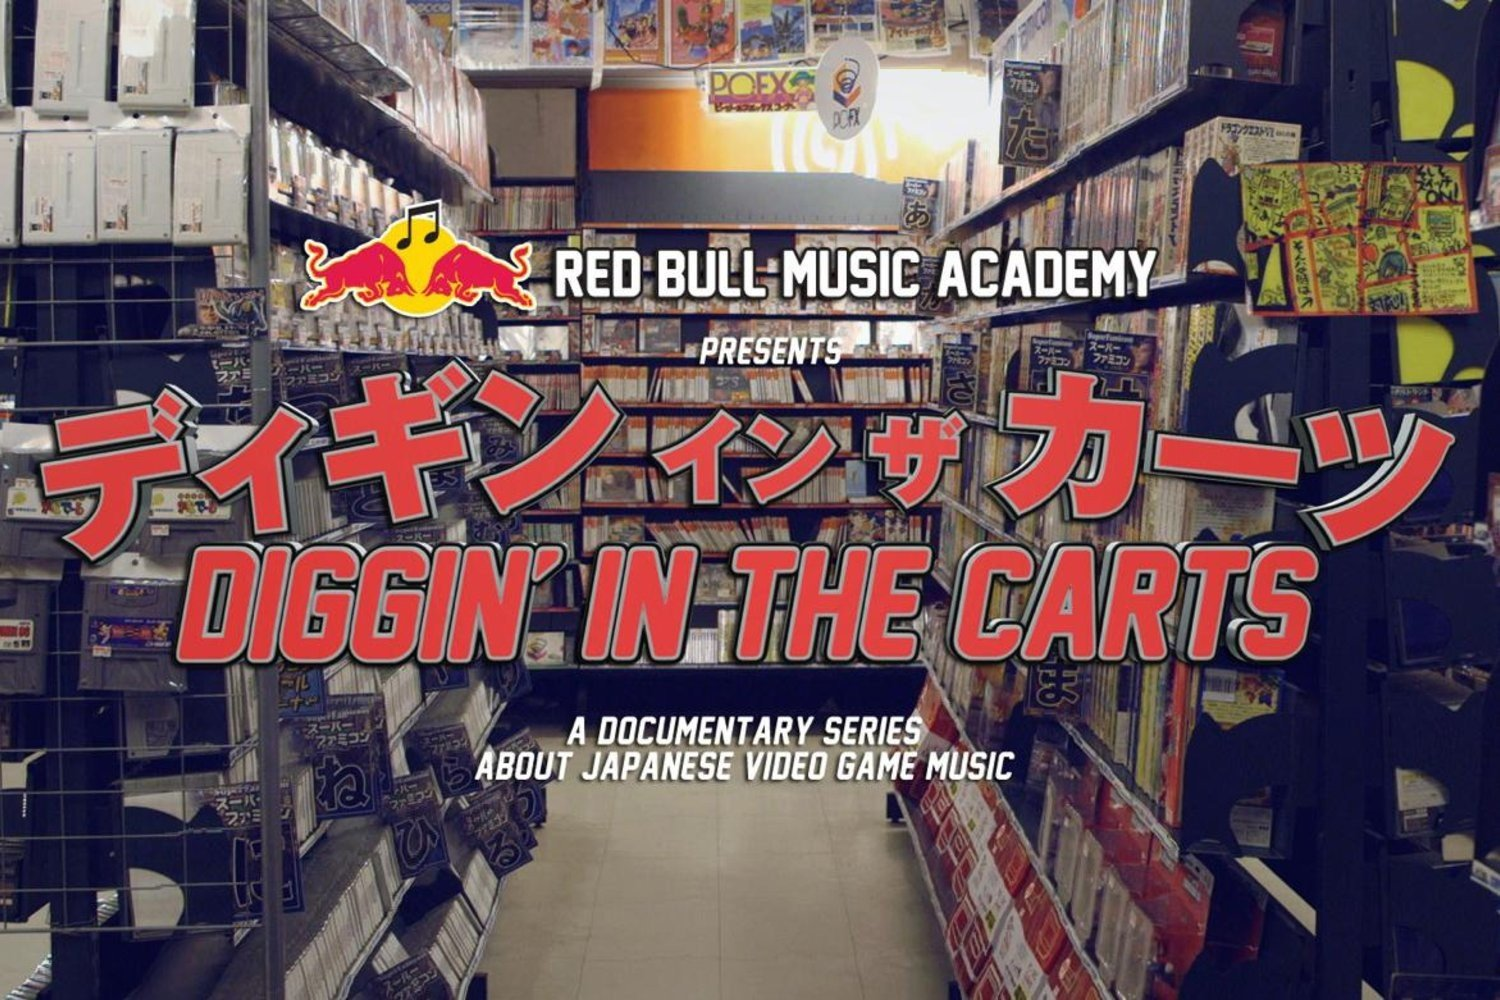 Diggin' in the carts 重返卡带时光